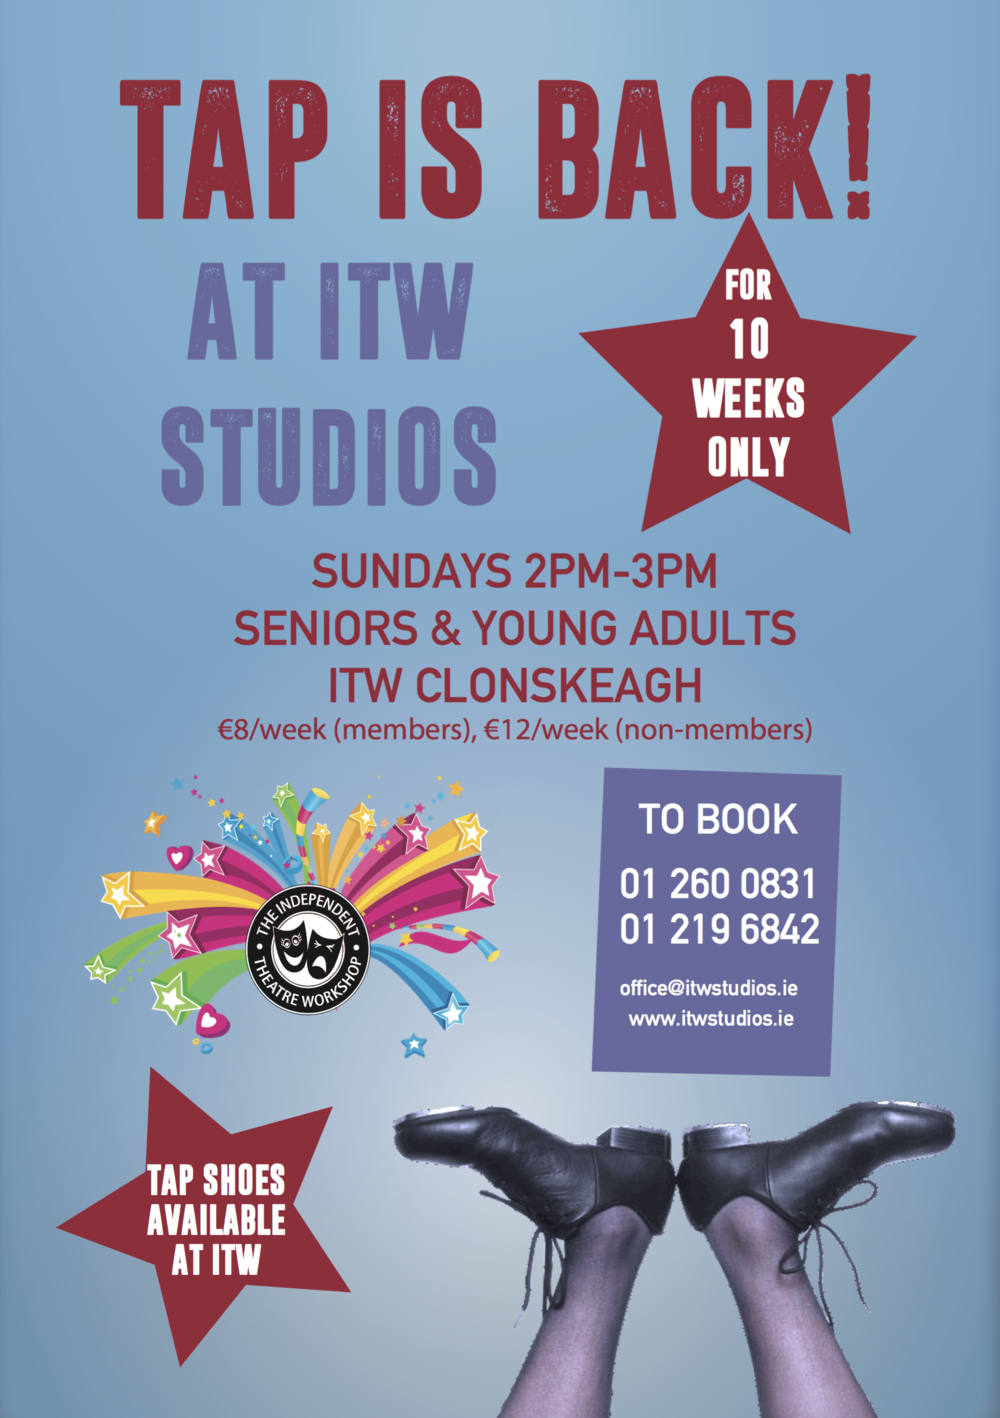 Book in now for TAP in Term 3! A 9 week Tap class for Seniors and Young Adults begins on Sunday 26th February! ITW has shoes for you to borrow, and it's being offered at a discounted rate for the 9 week term. Try it out, bring a friend, but book in quickly as the class is subject to minimum and maximum numbers.